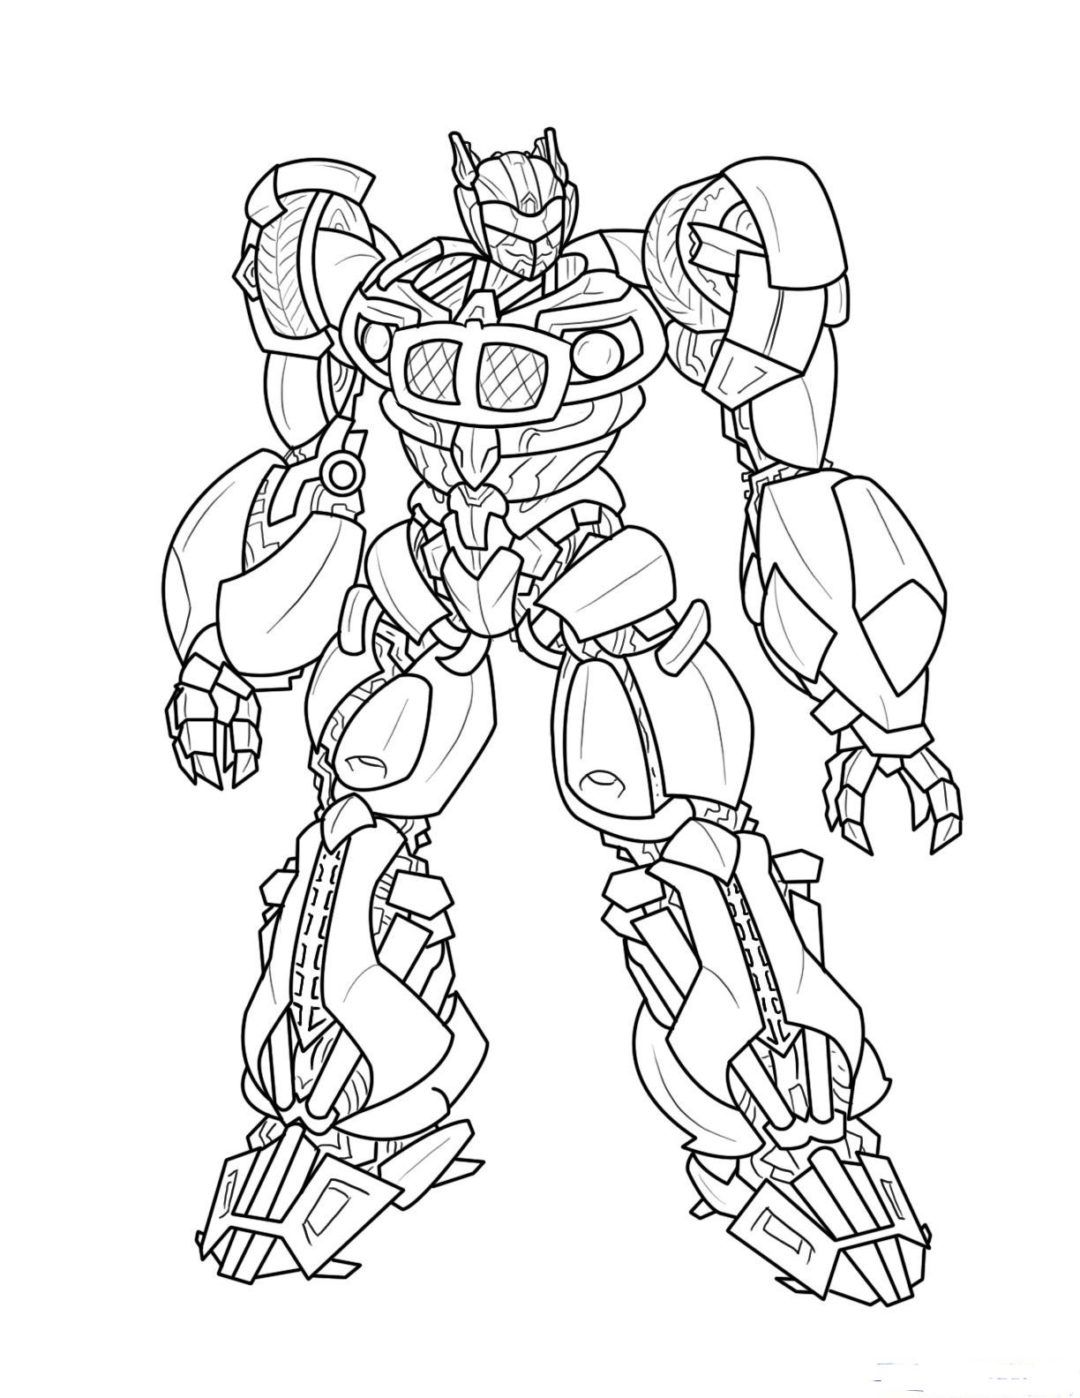 Coloring Rocks Transformers Coloring Pages Bee Coloring Pages Coloring Pages